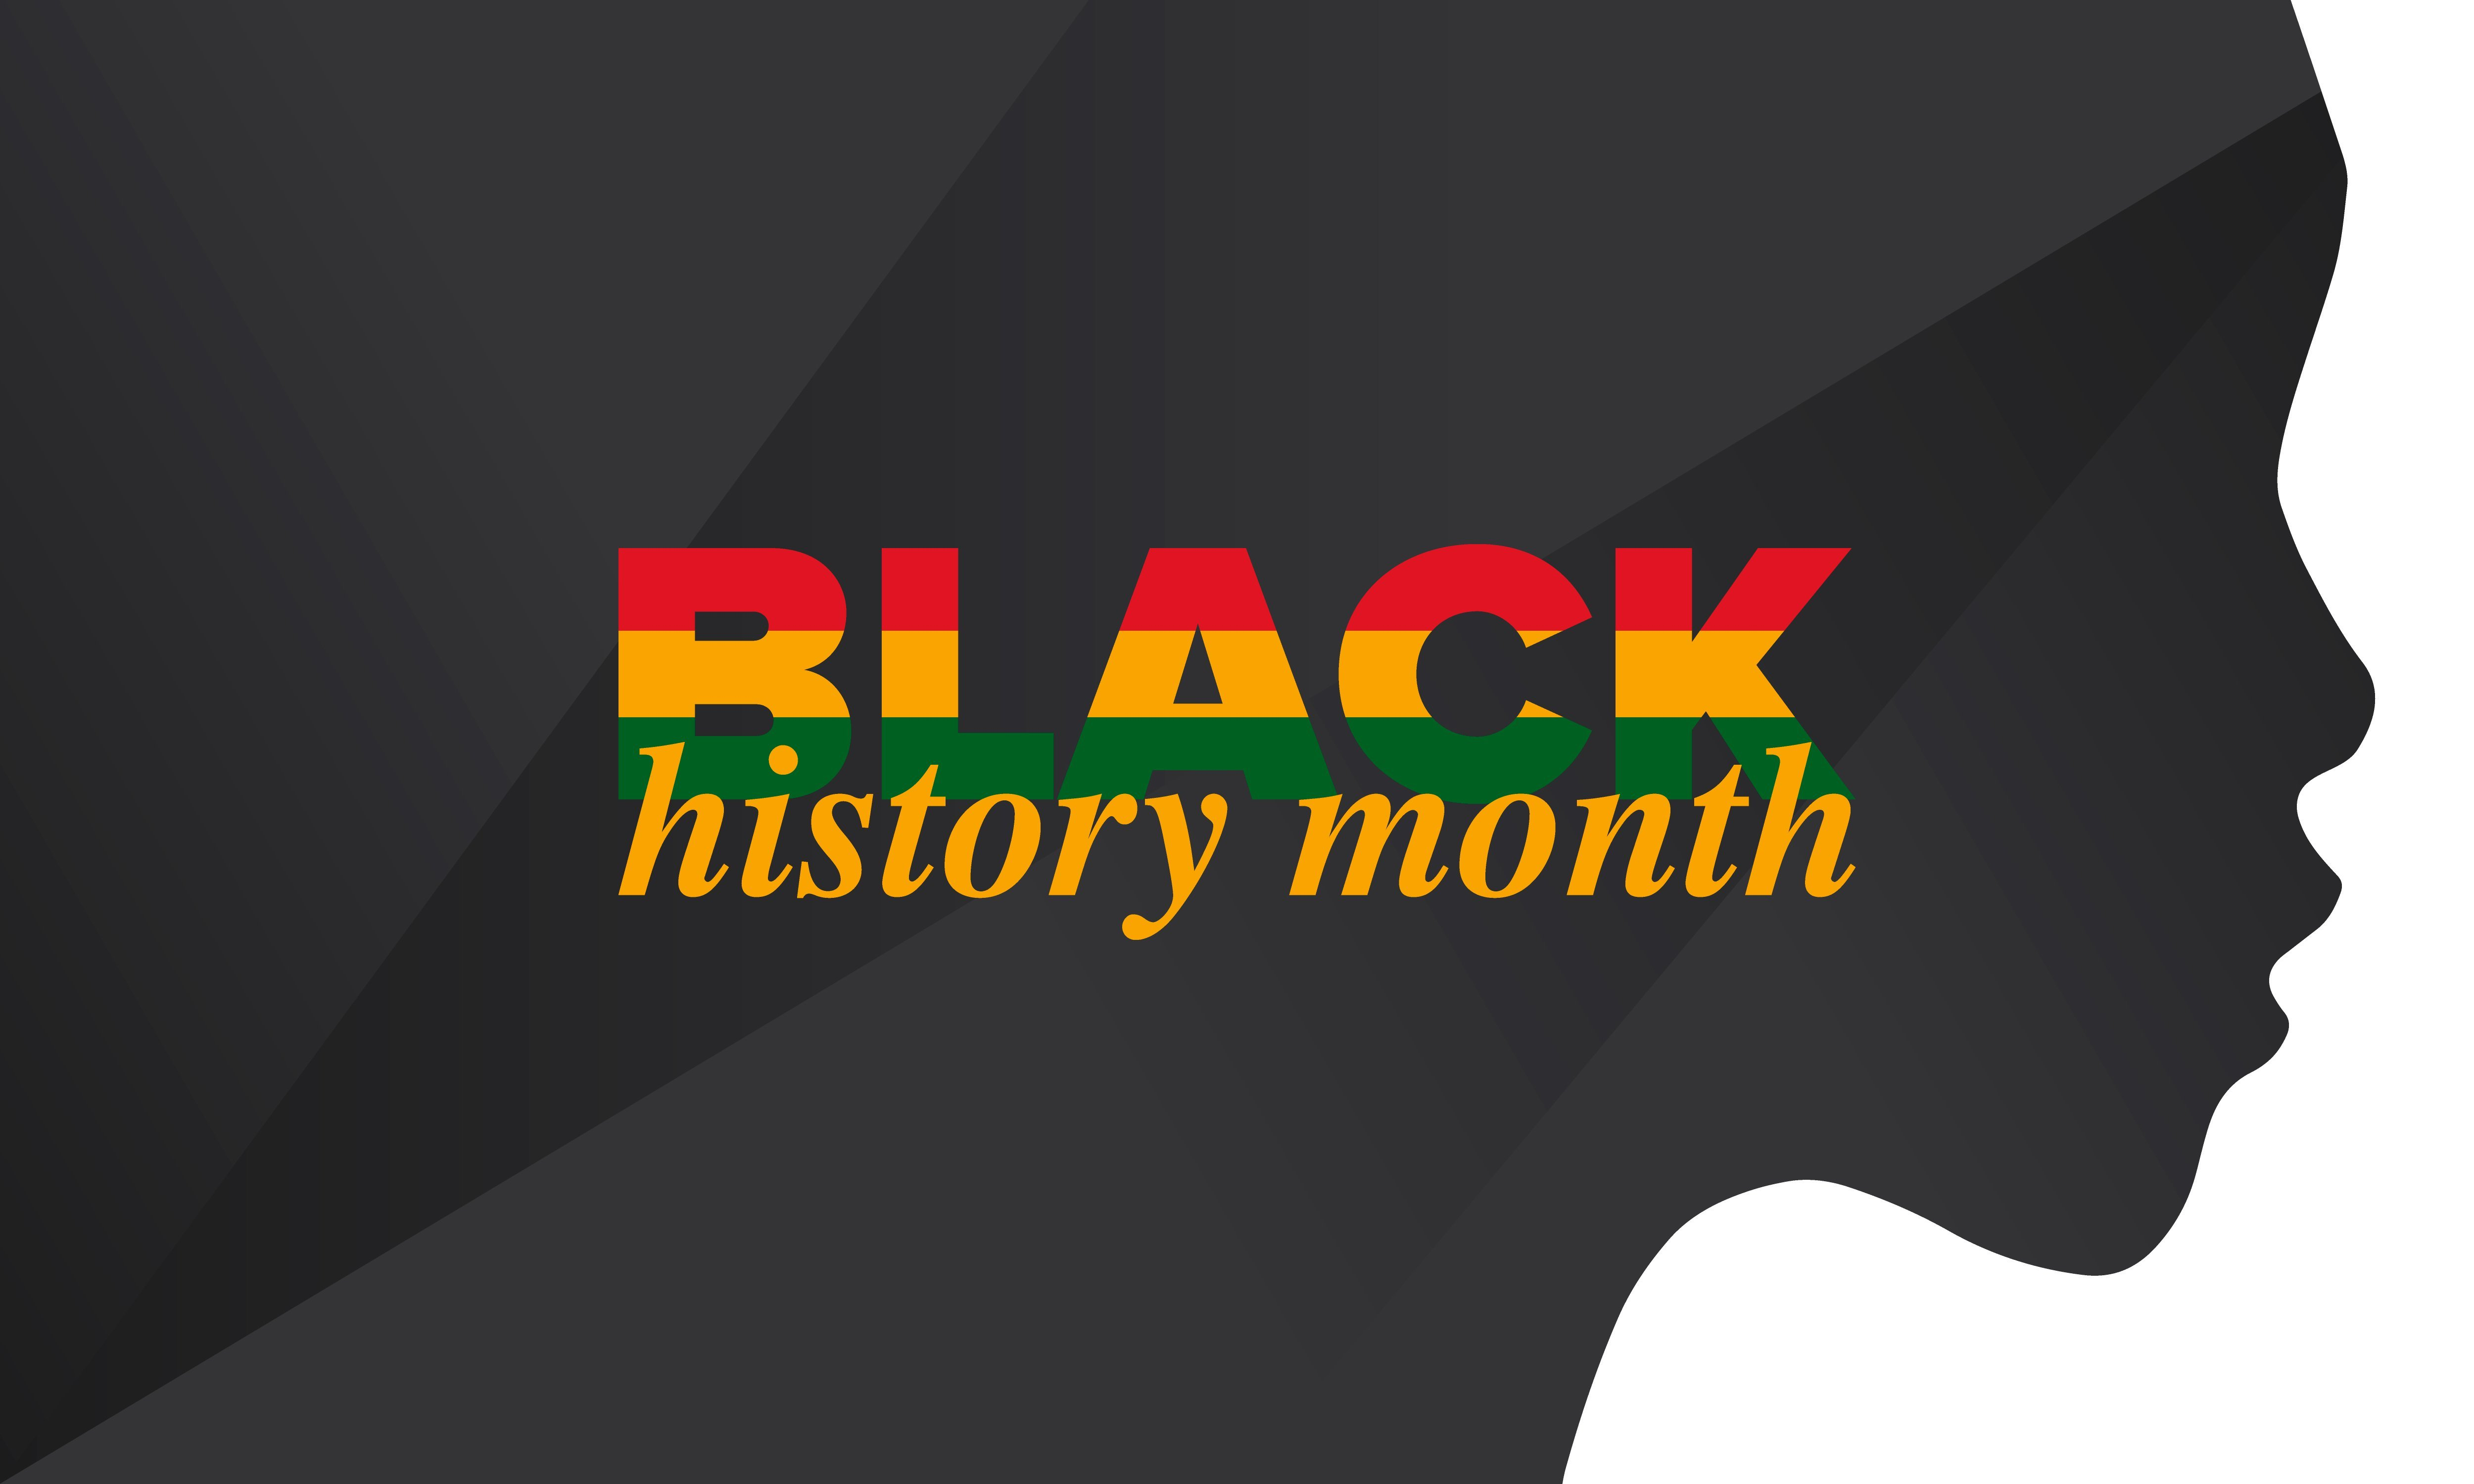 Black History Month. African American History. Celebrated annual. In February in United States and Canada. In October in Great Britain. Poster, card, banner, background Photo: Getty Images